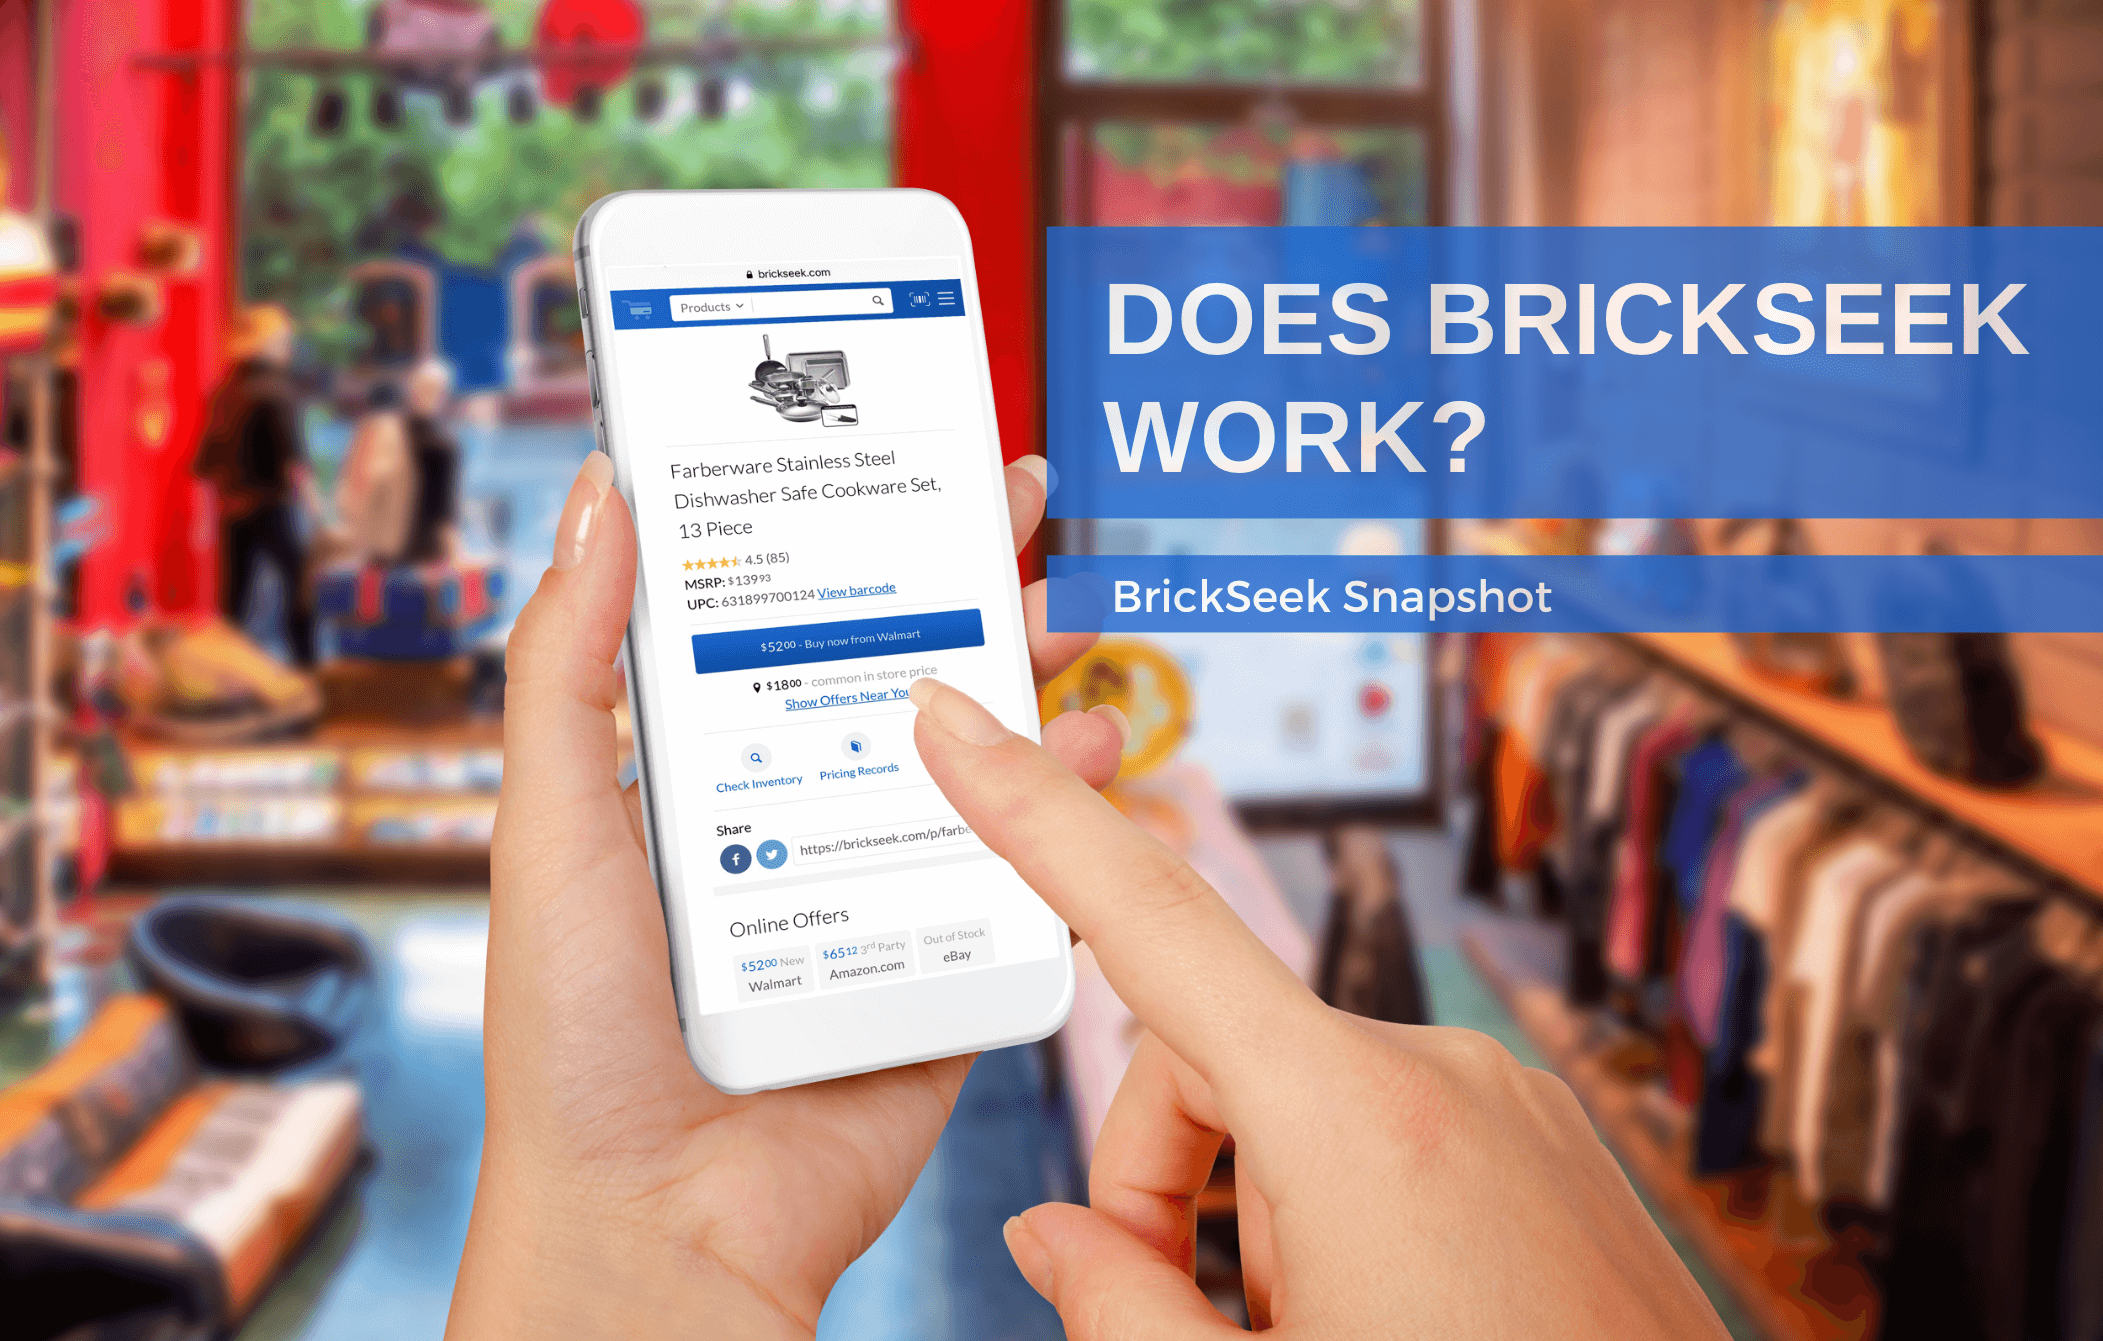 Does BrickSeek Work? –                      The BrickSeek Snapshot